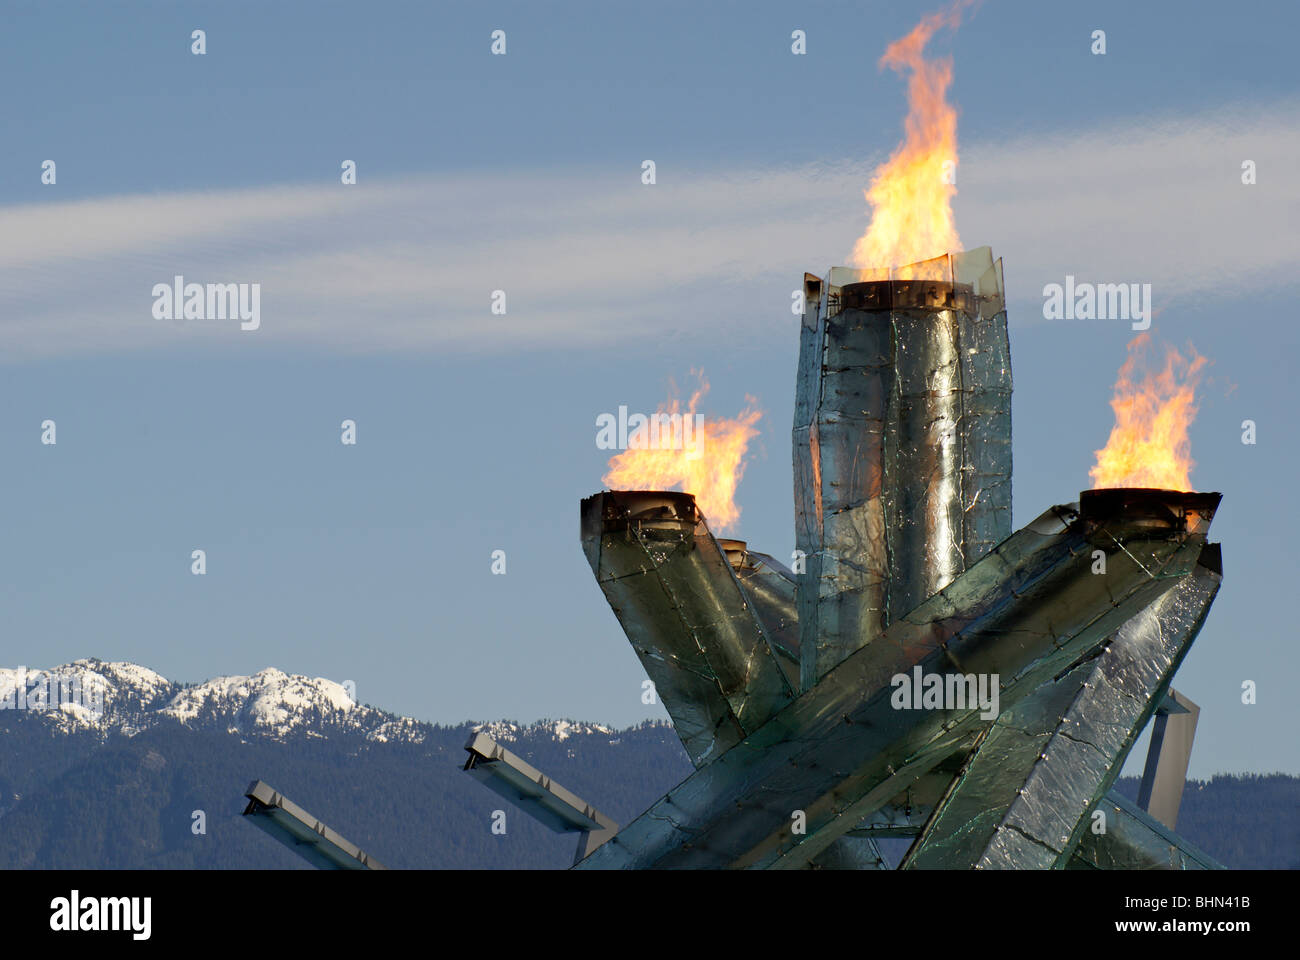 the-olympic-cauldron-at-the-2010-winter-